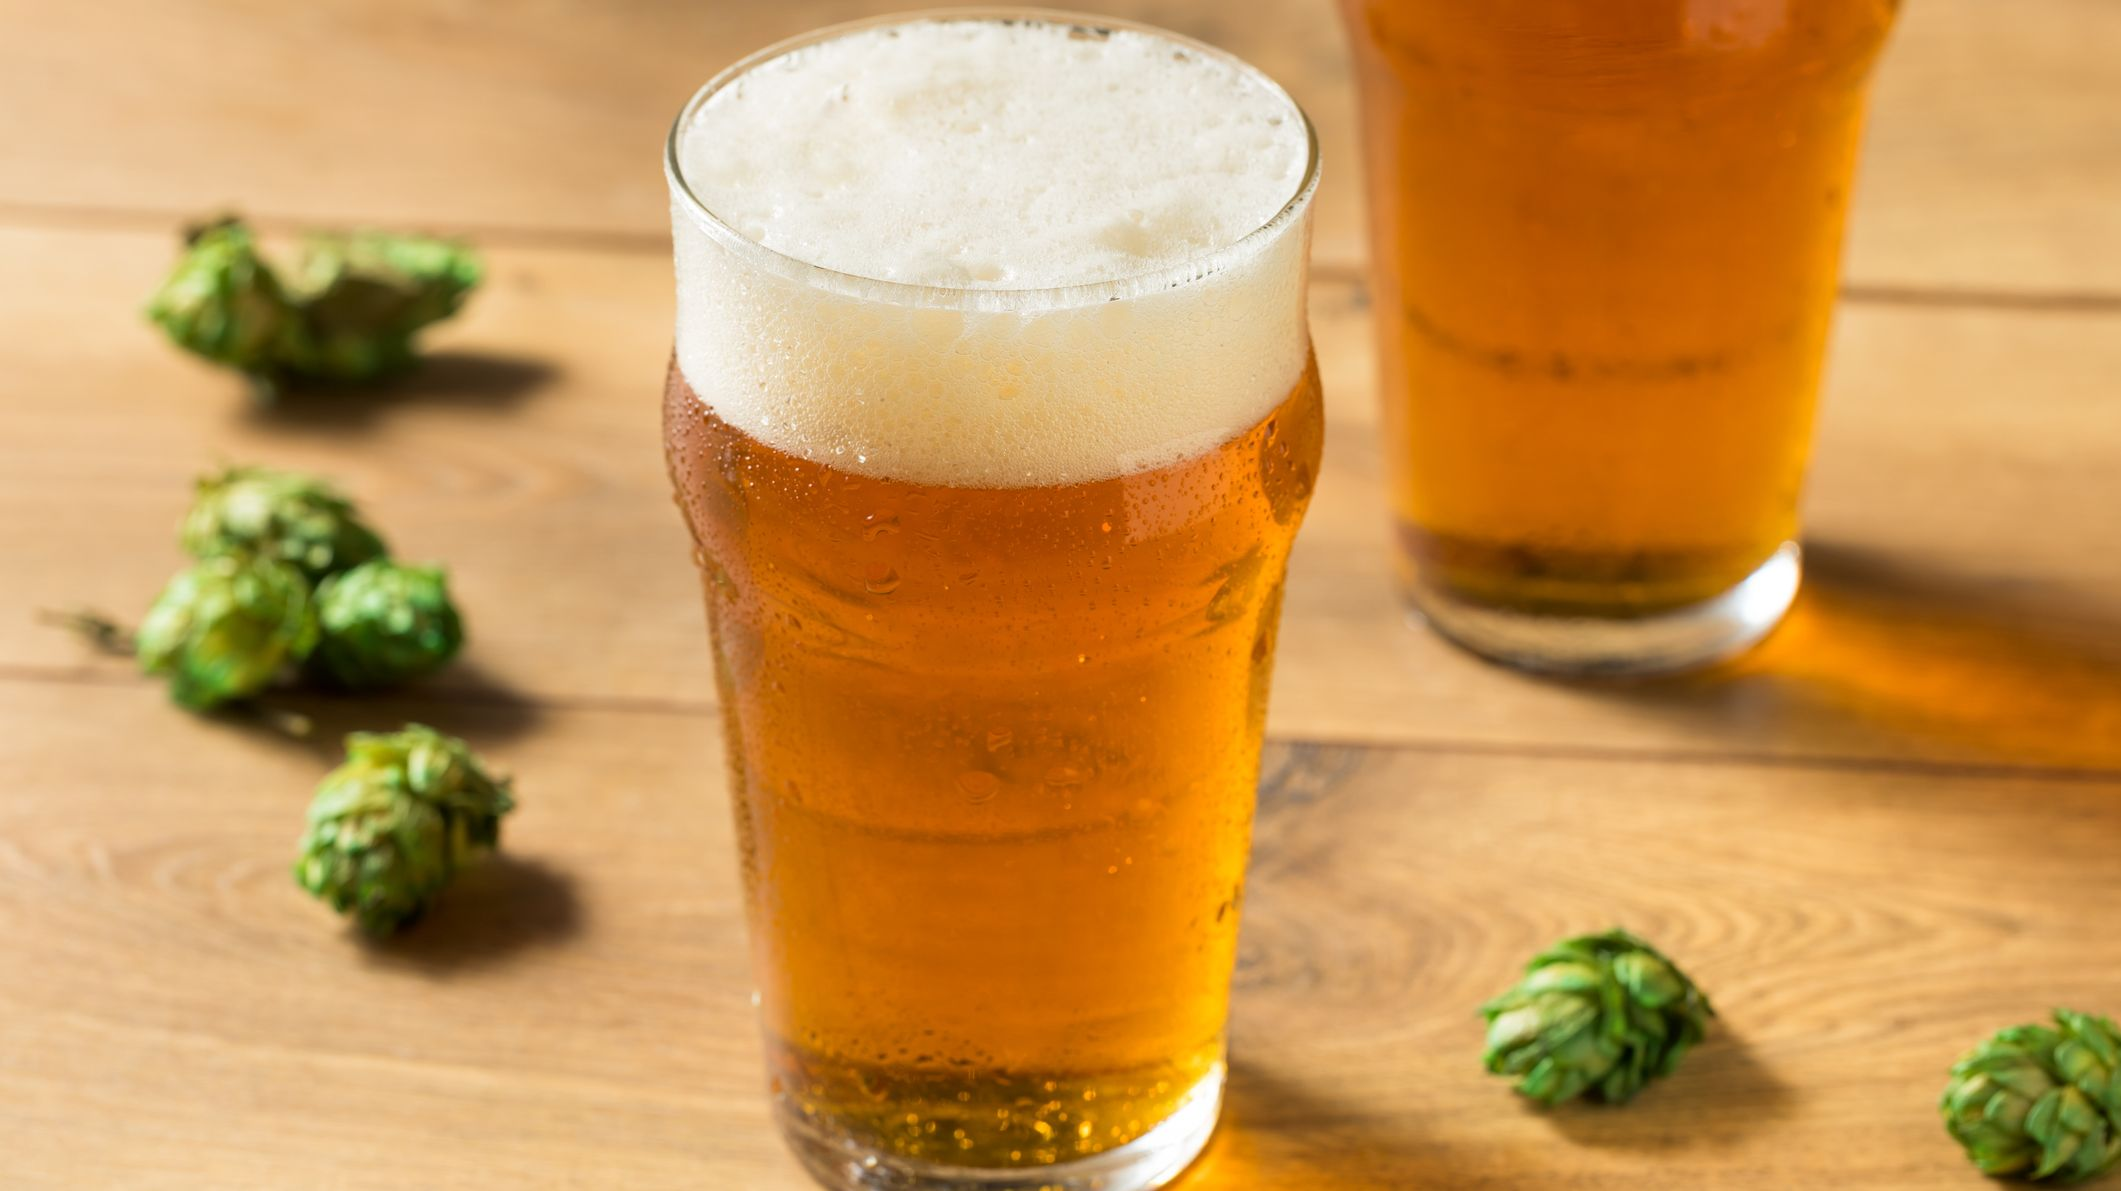 9 Fascinating Facts About IPA Beers